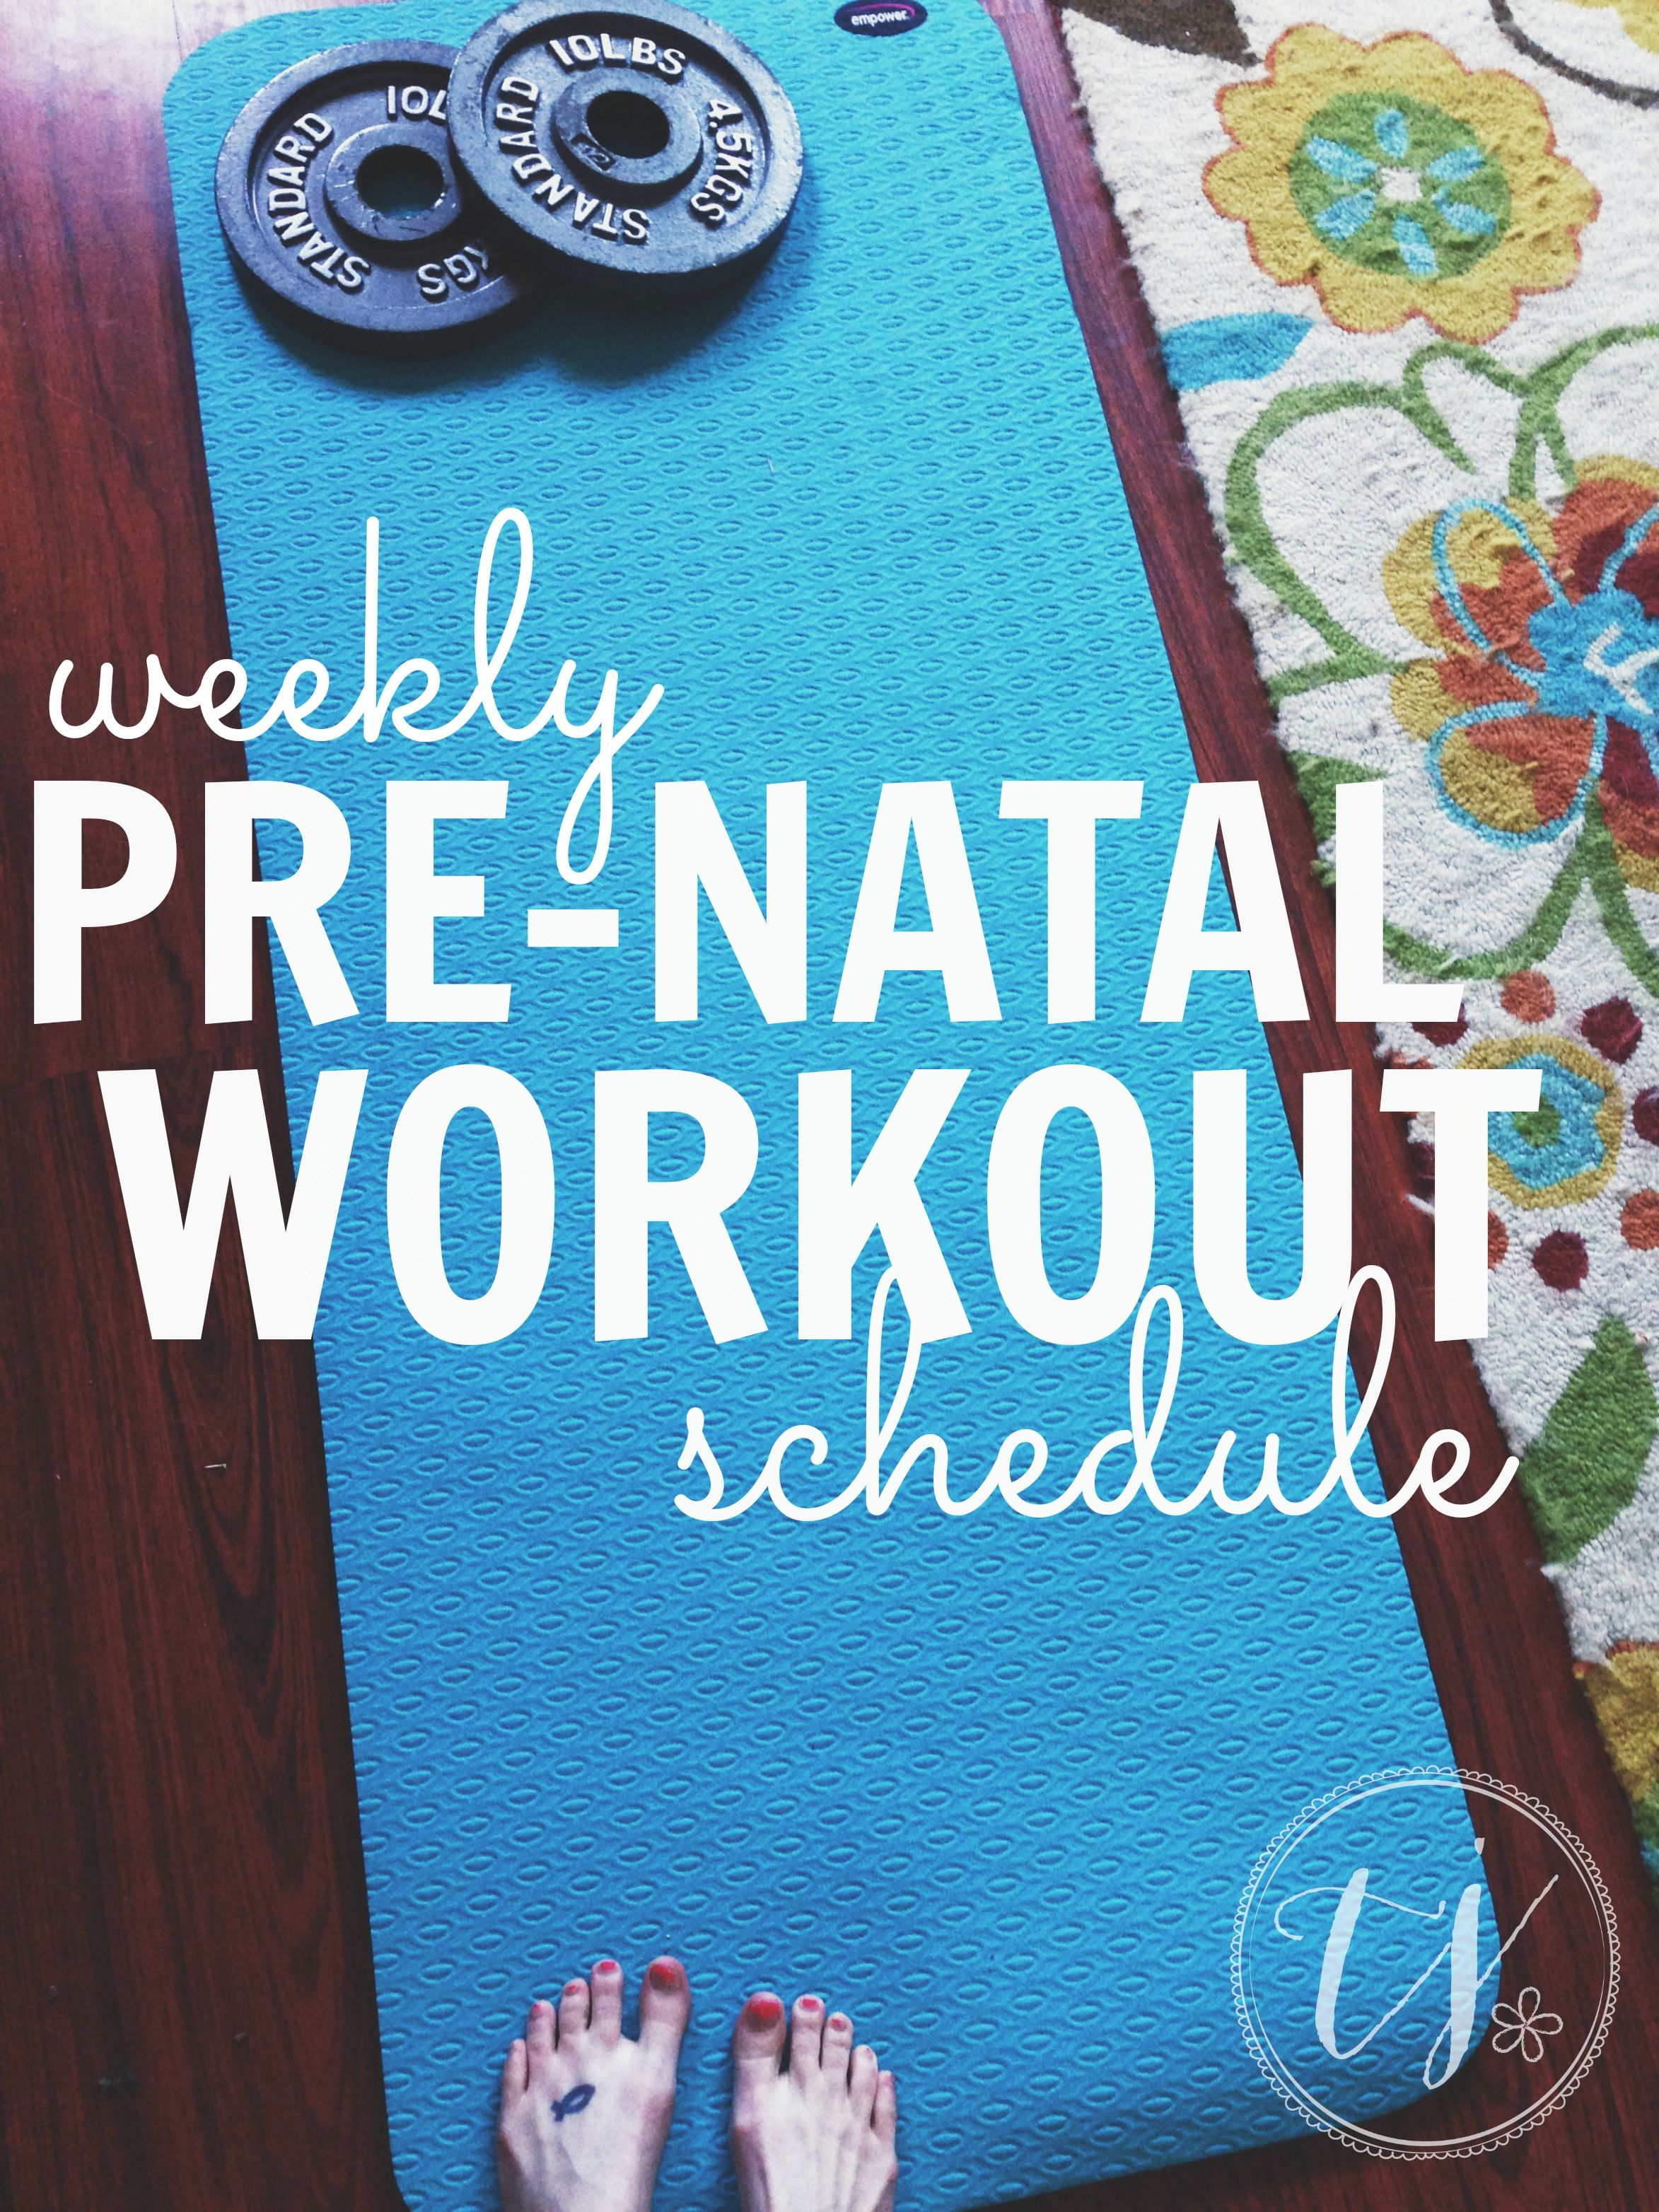 Are you pregnant but not sure how to workout? Here is a great sample weekly pregnancy workout schedule from one mama to another. #pregnancyworkout